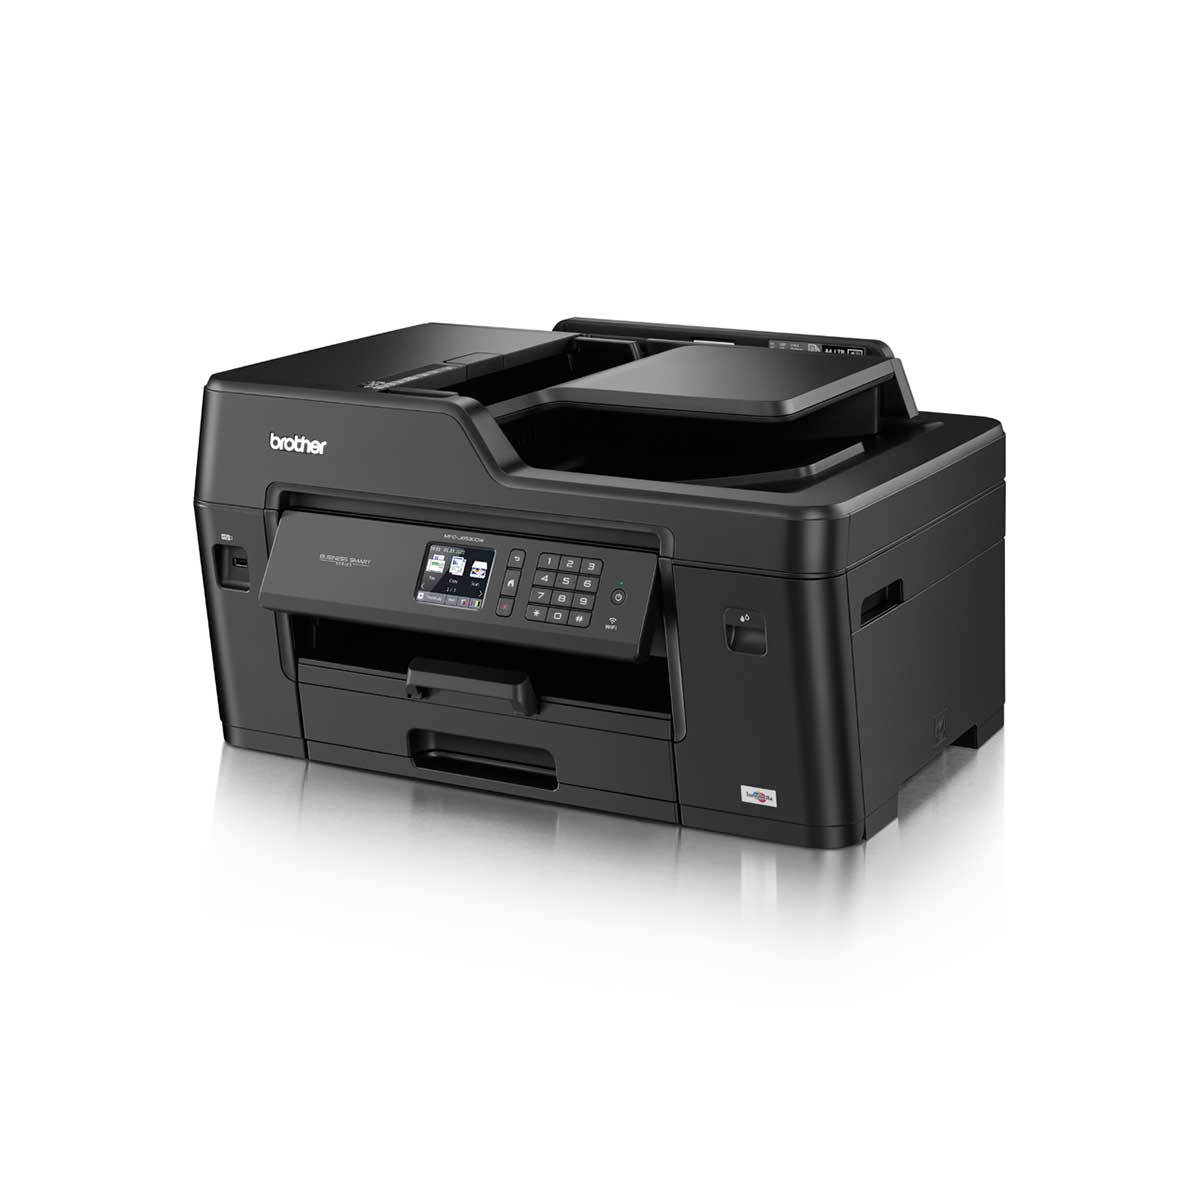 Brother MFC-J6530DW Professional A3 Colour Inkjet Multifunction